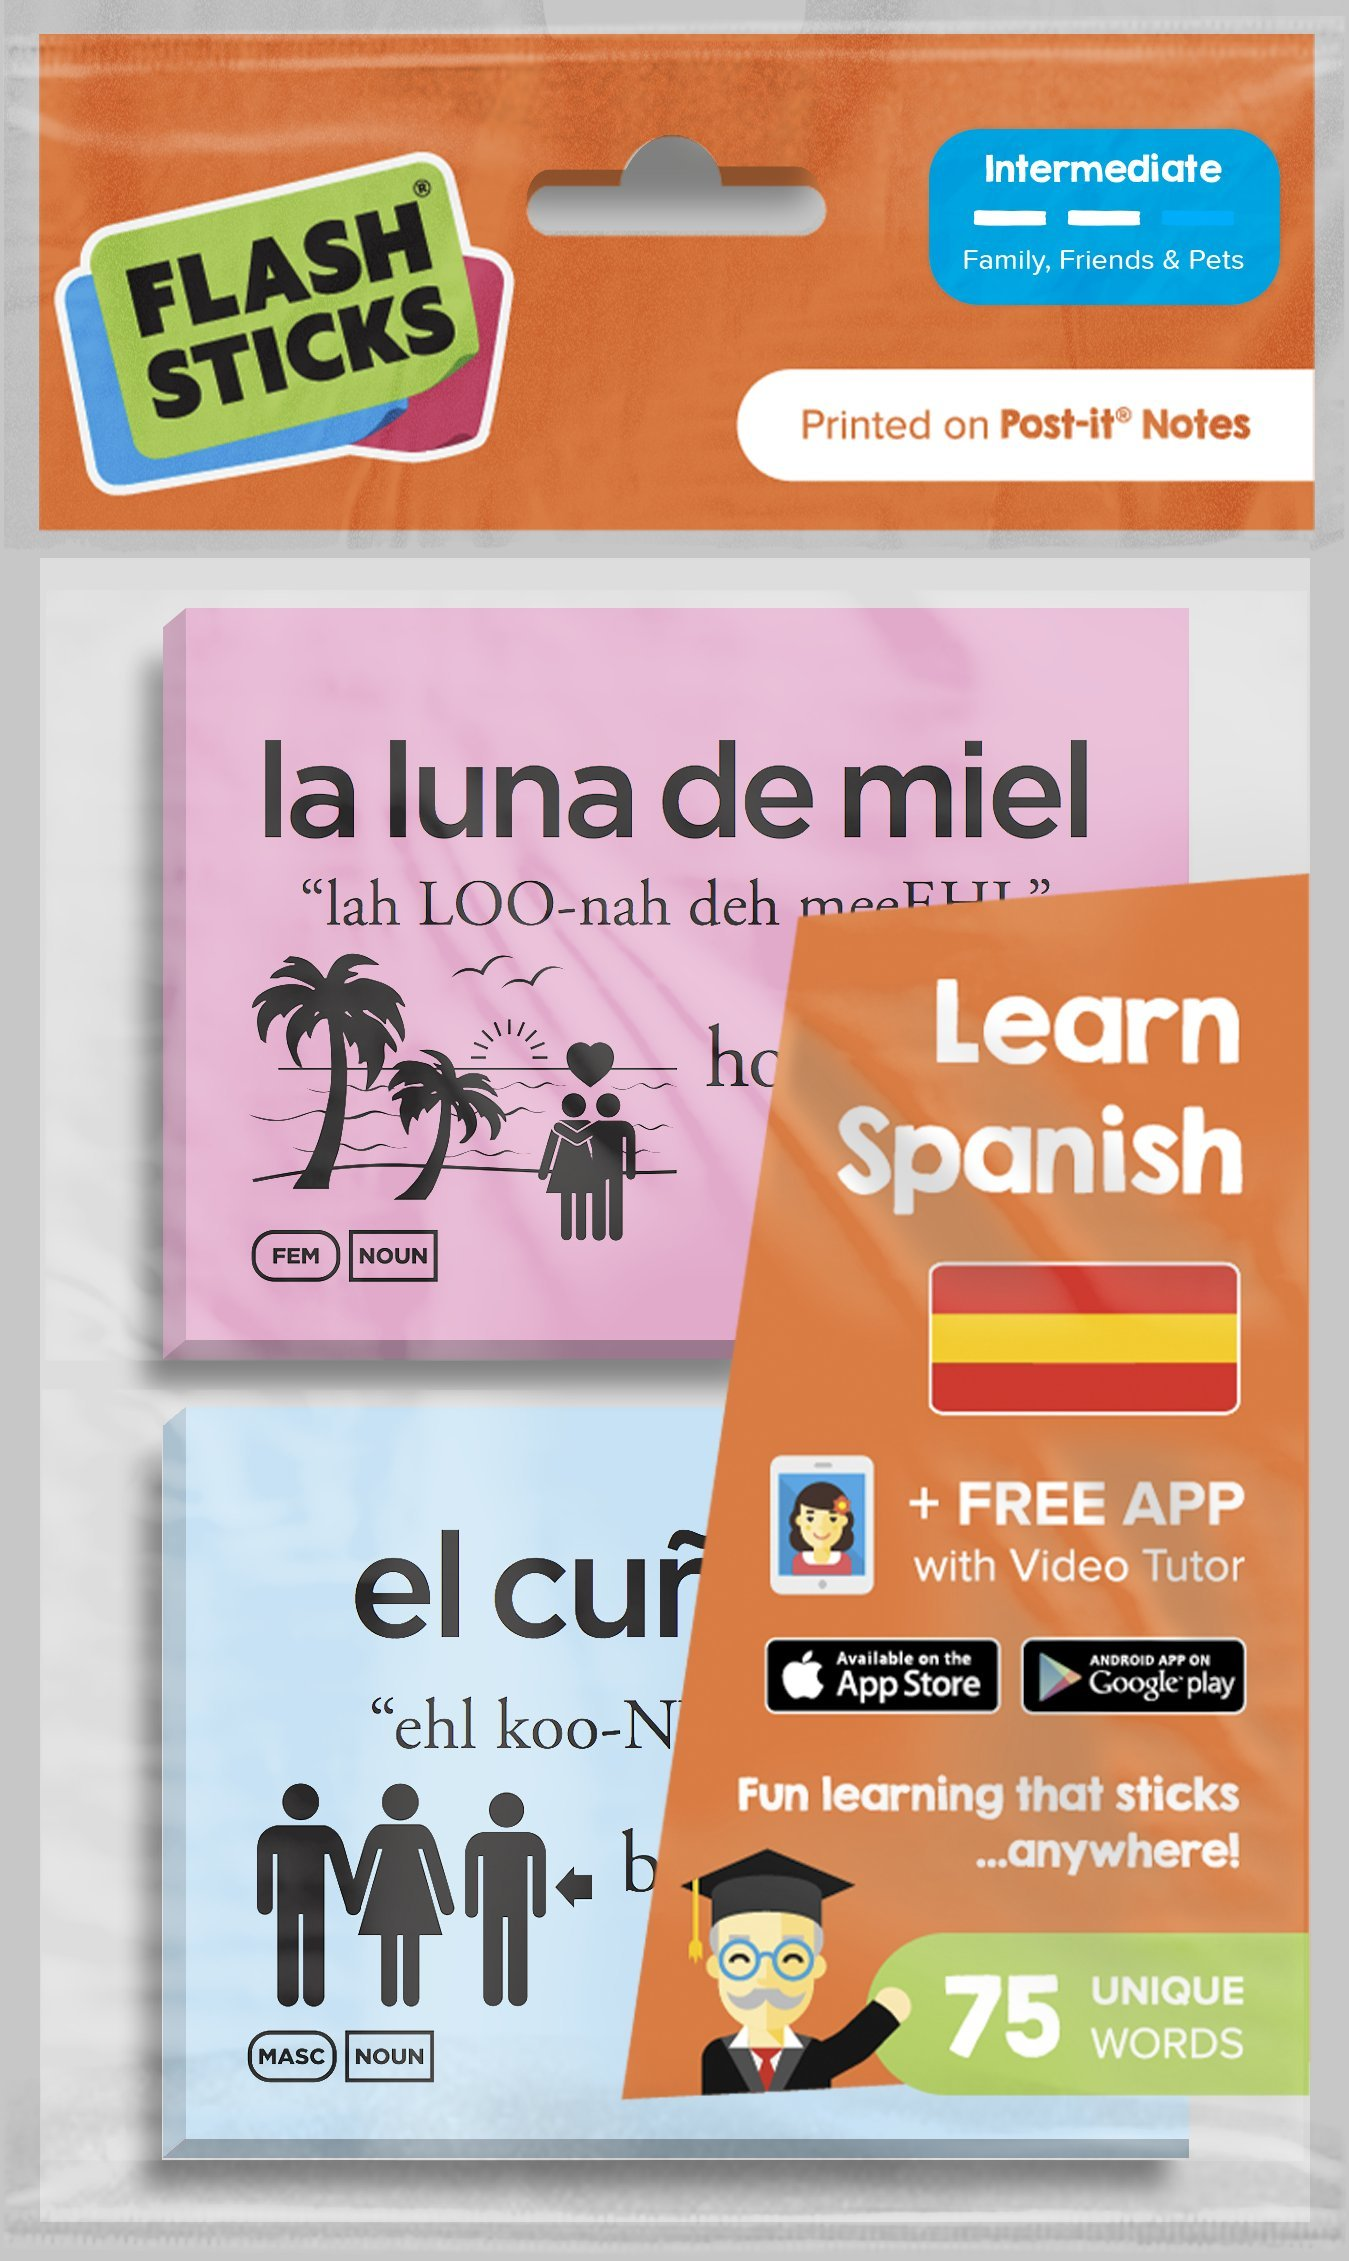 Flashsticks Spanish Post-it Notes (75 words) | Essential Spanish vocab to communicate about Friends, Family & Pets | Fun and Effective way to make language learning part of your daily routine+FREE App